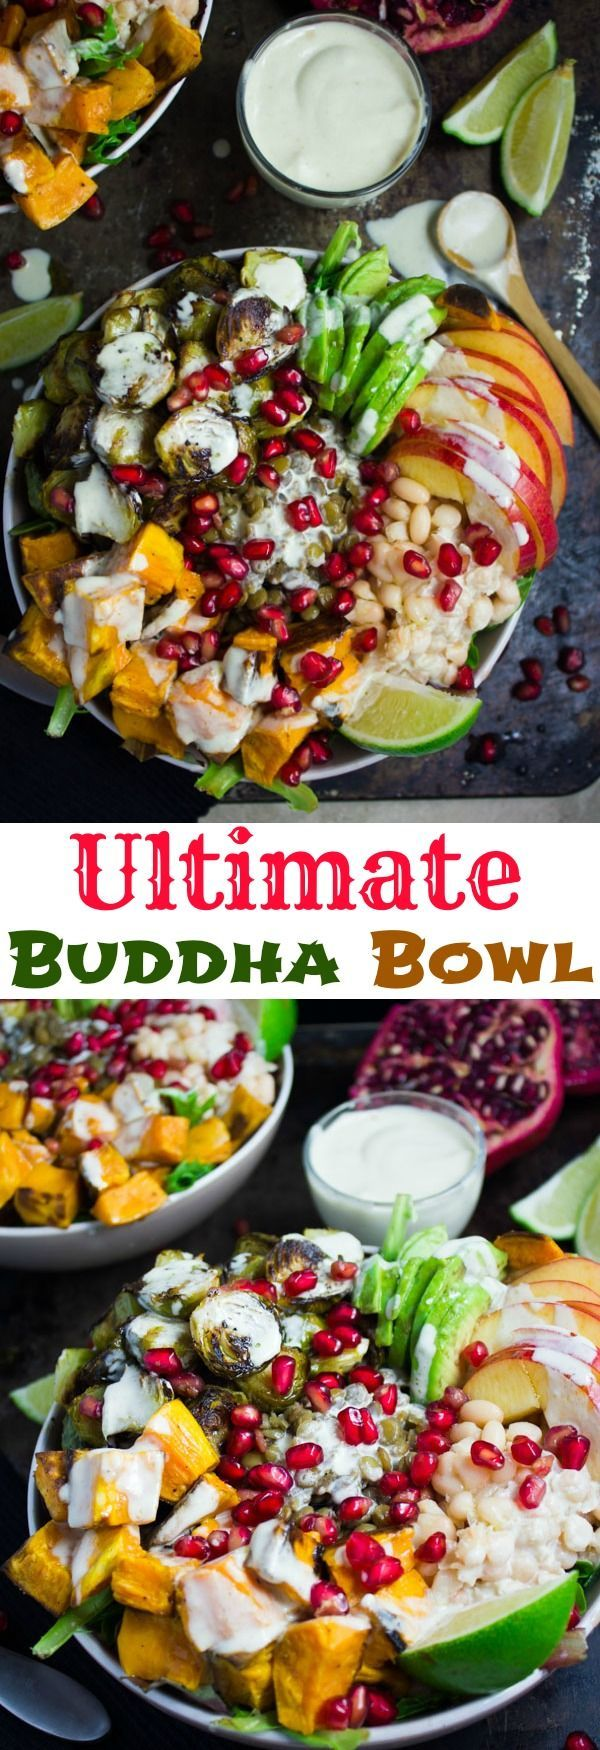 Lentil Fall Harvest Buddha Bowl. This easy, crazy delicious Buddha goodness bowl is all you need to make your life happier! Loaded with greens, lentils, navy beans, apples, avocado, sweet potatoes, sprouts, pomegranate arils--all drizzled with the perfect tahini sauce! Get this recipe and tips for Buddha bowl perfection. http://www.twopurplefigs.com